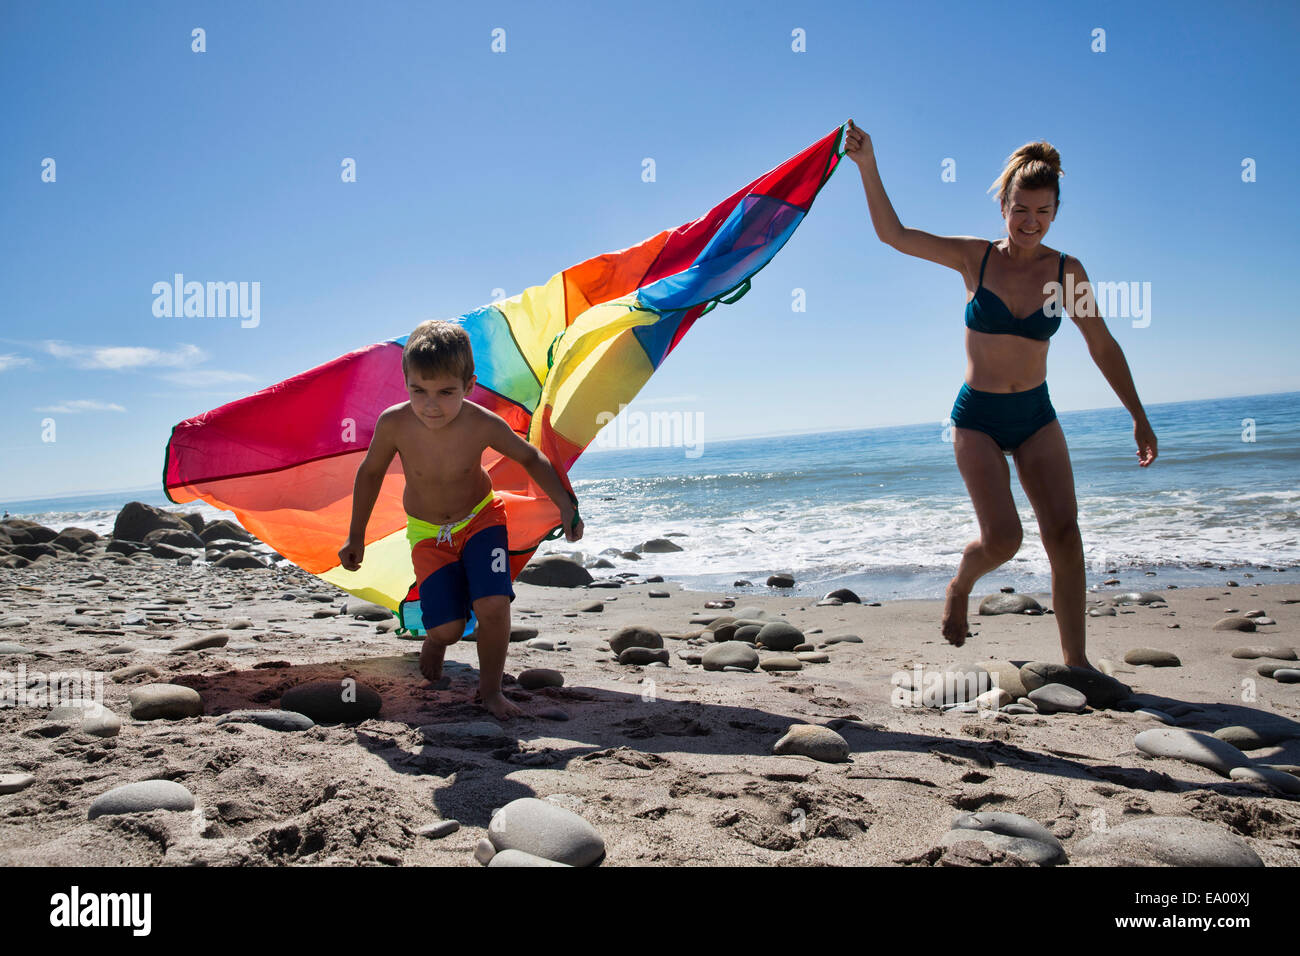 Mature woman and son running with multi colored textile on beach, County Park, Los Angeles, California, USA - Stock Image